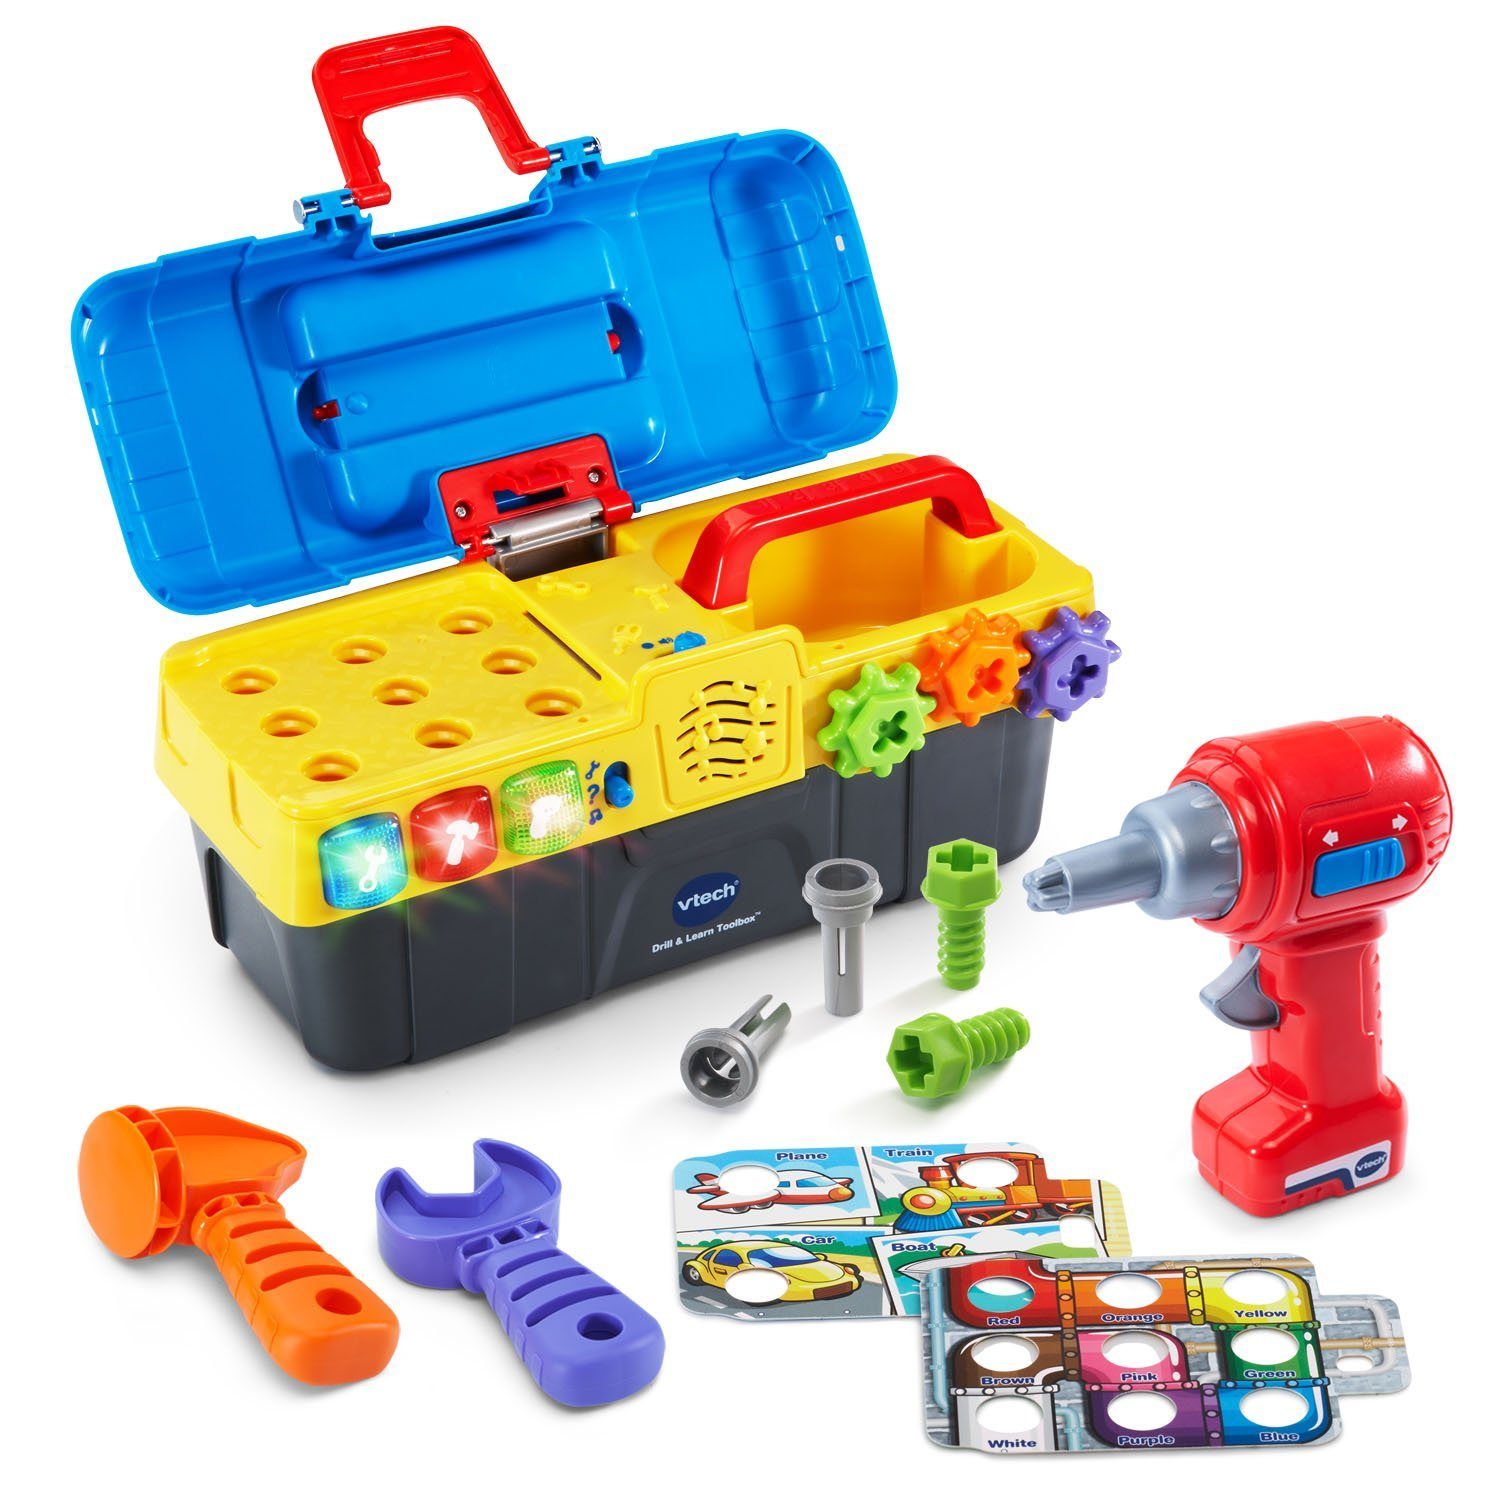 Toys For 18 : Best toys gift ideas for year old boys reviewed in